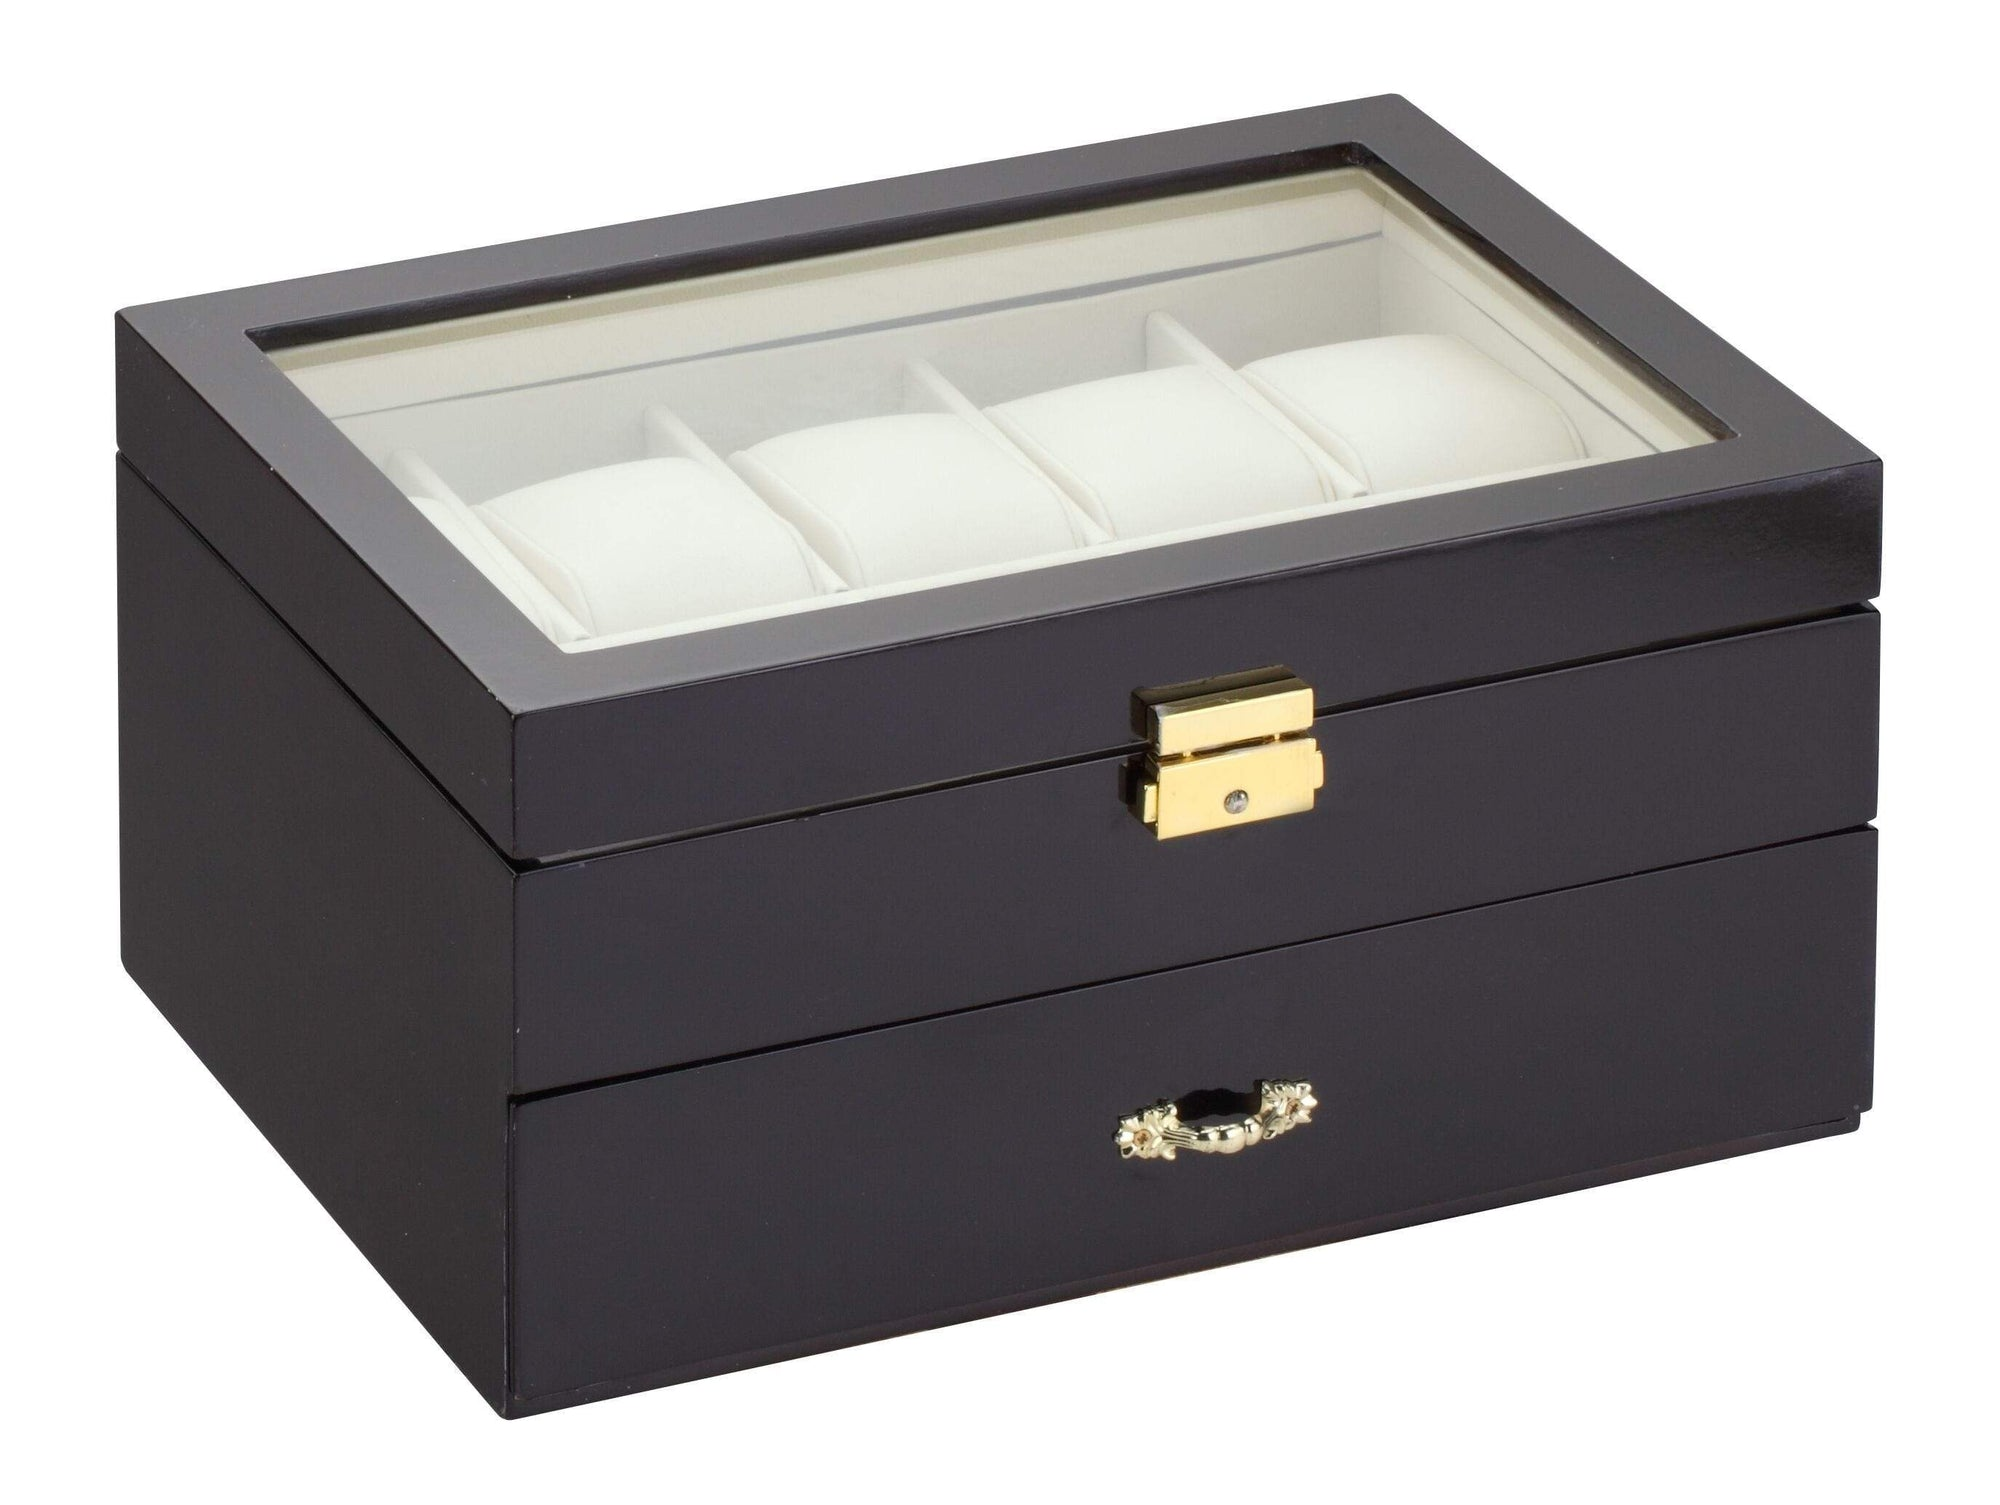 Diplomat Black Wood Finish Ten Watch Case with Cream Leatherette Interior and Drawer With Pen and Cufflink Storage Armadillo Safe and Vault